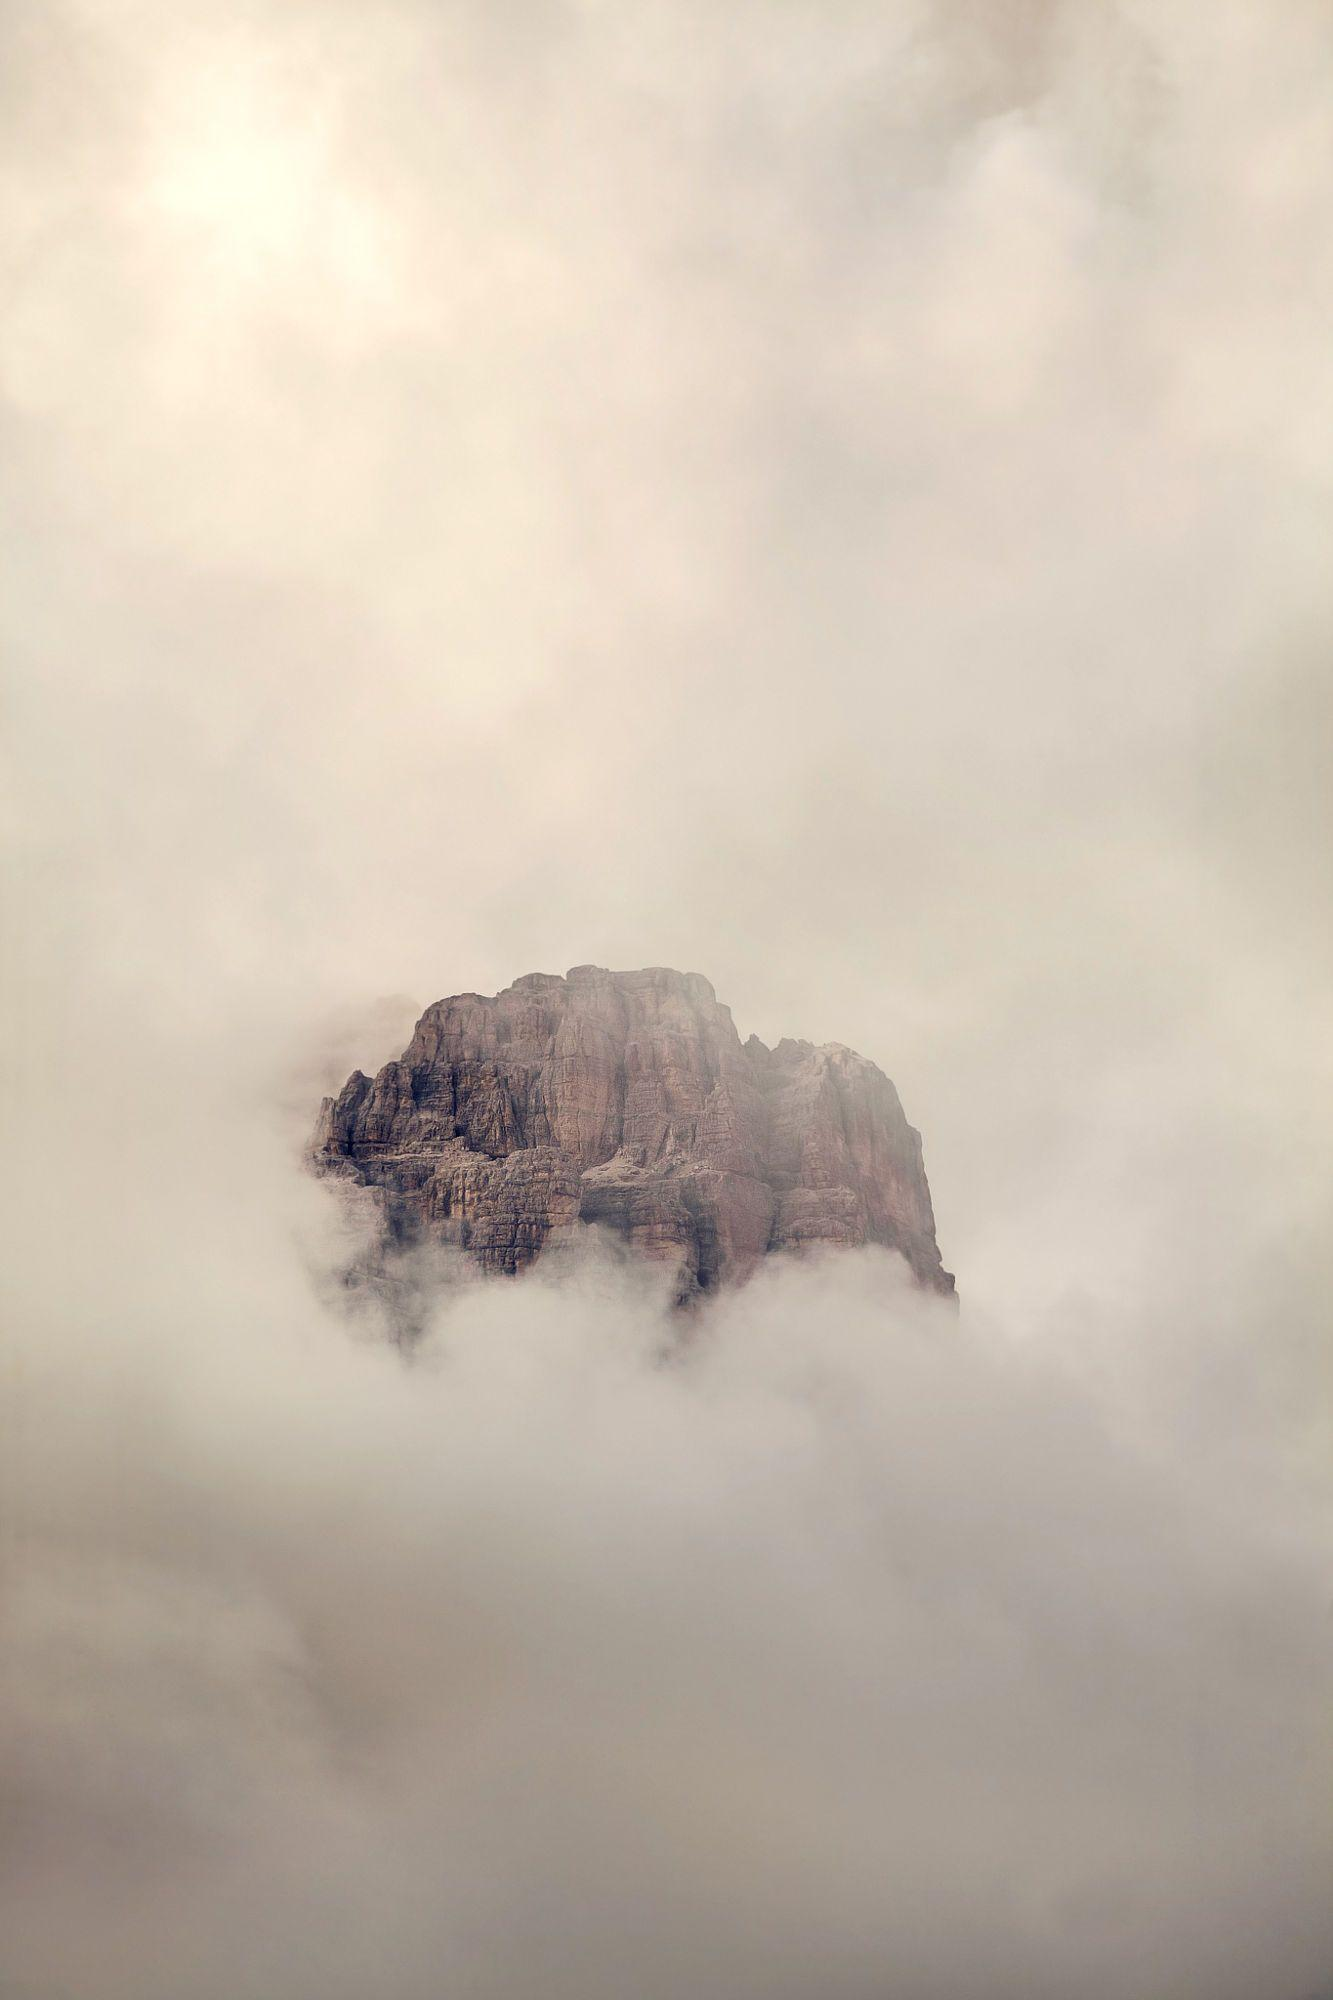 Wallpapers of the week: fog